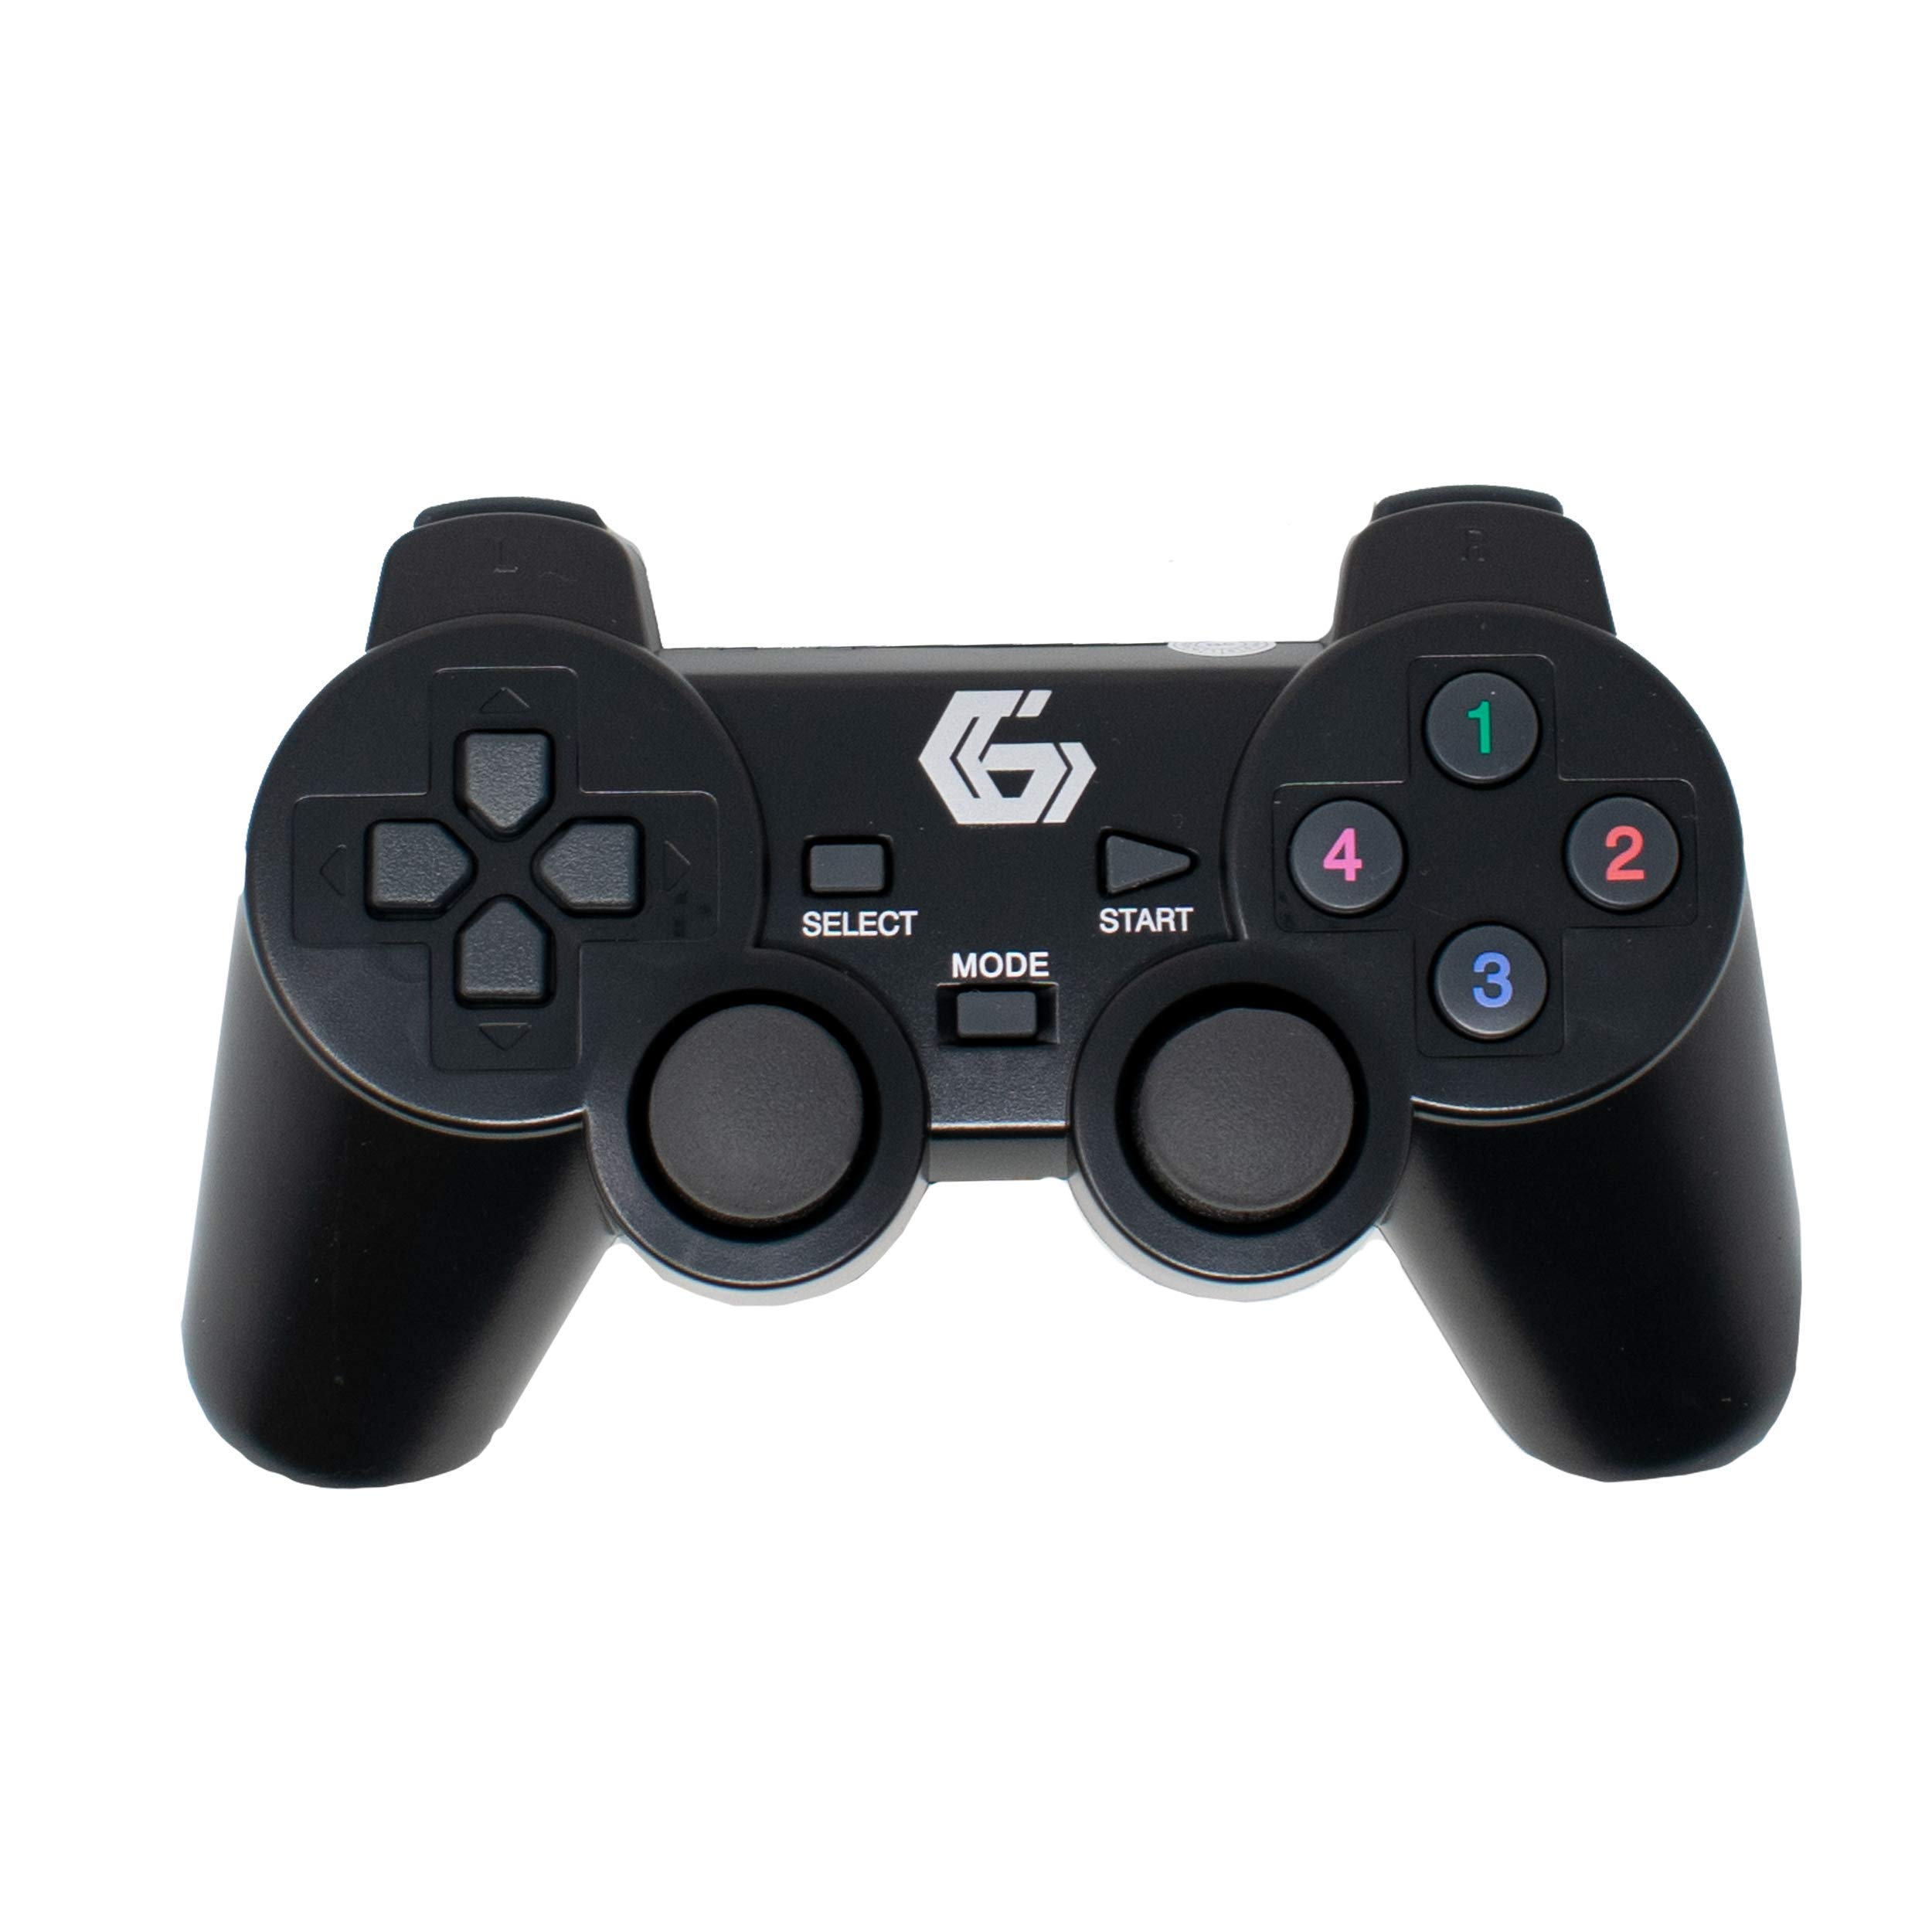 2.4GHz Sans Fil Vibrations Double Gamepad / De Keux Contrôleur Joypad pour PS2/PS3/PC (Windows 7/8/10) / iCHOOSE